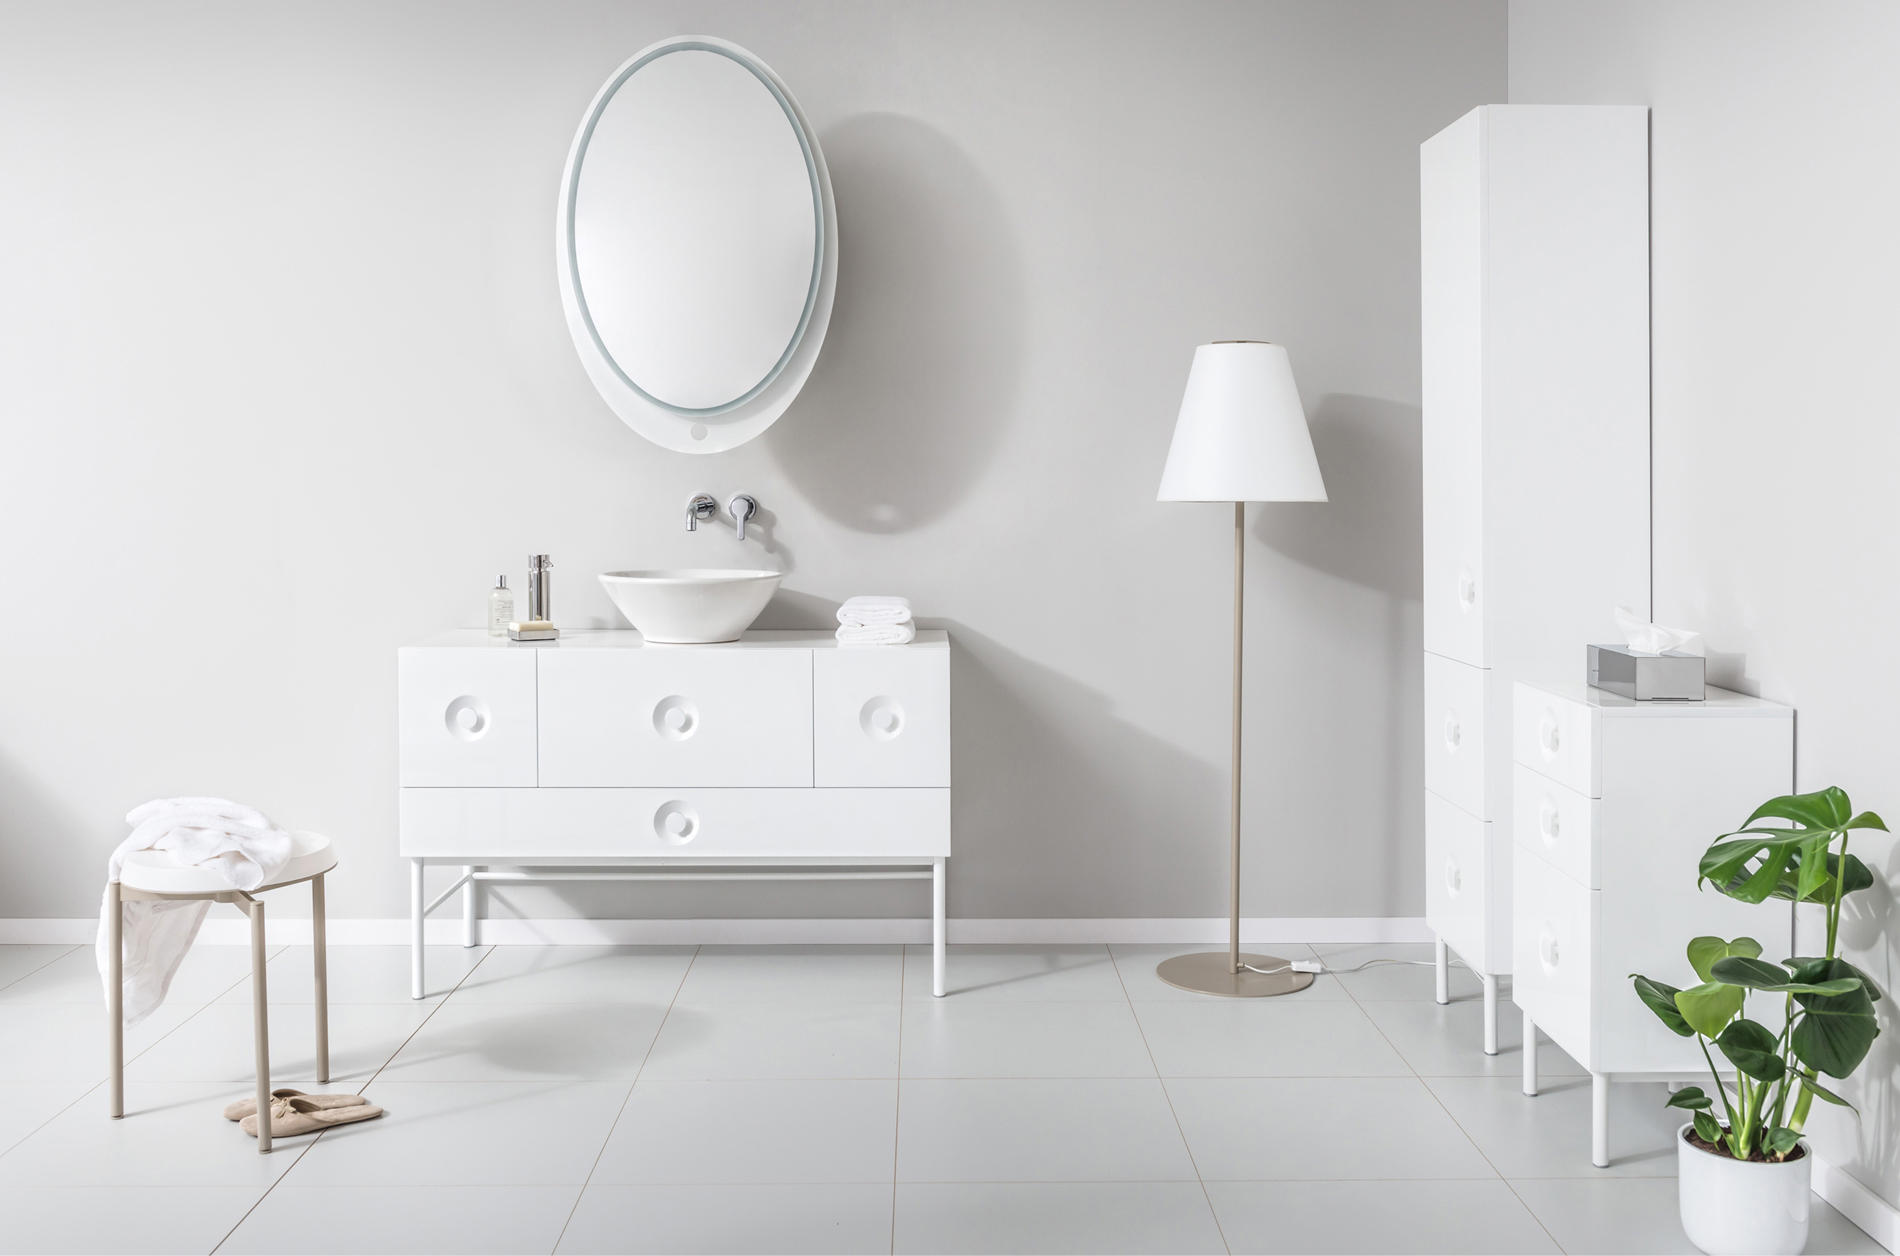 Ella Mirror Mirrors From Miior Architonic